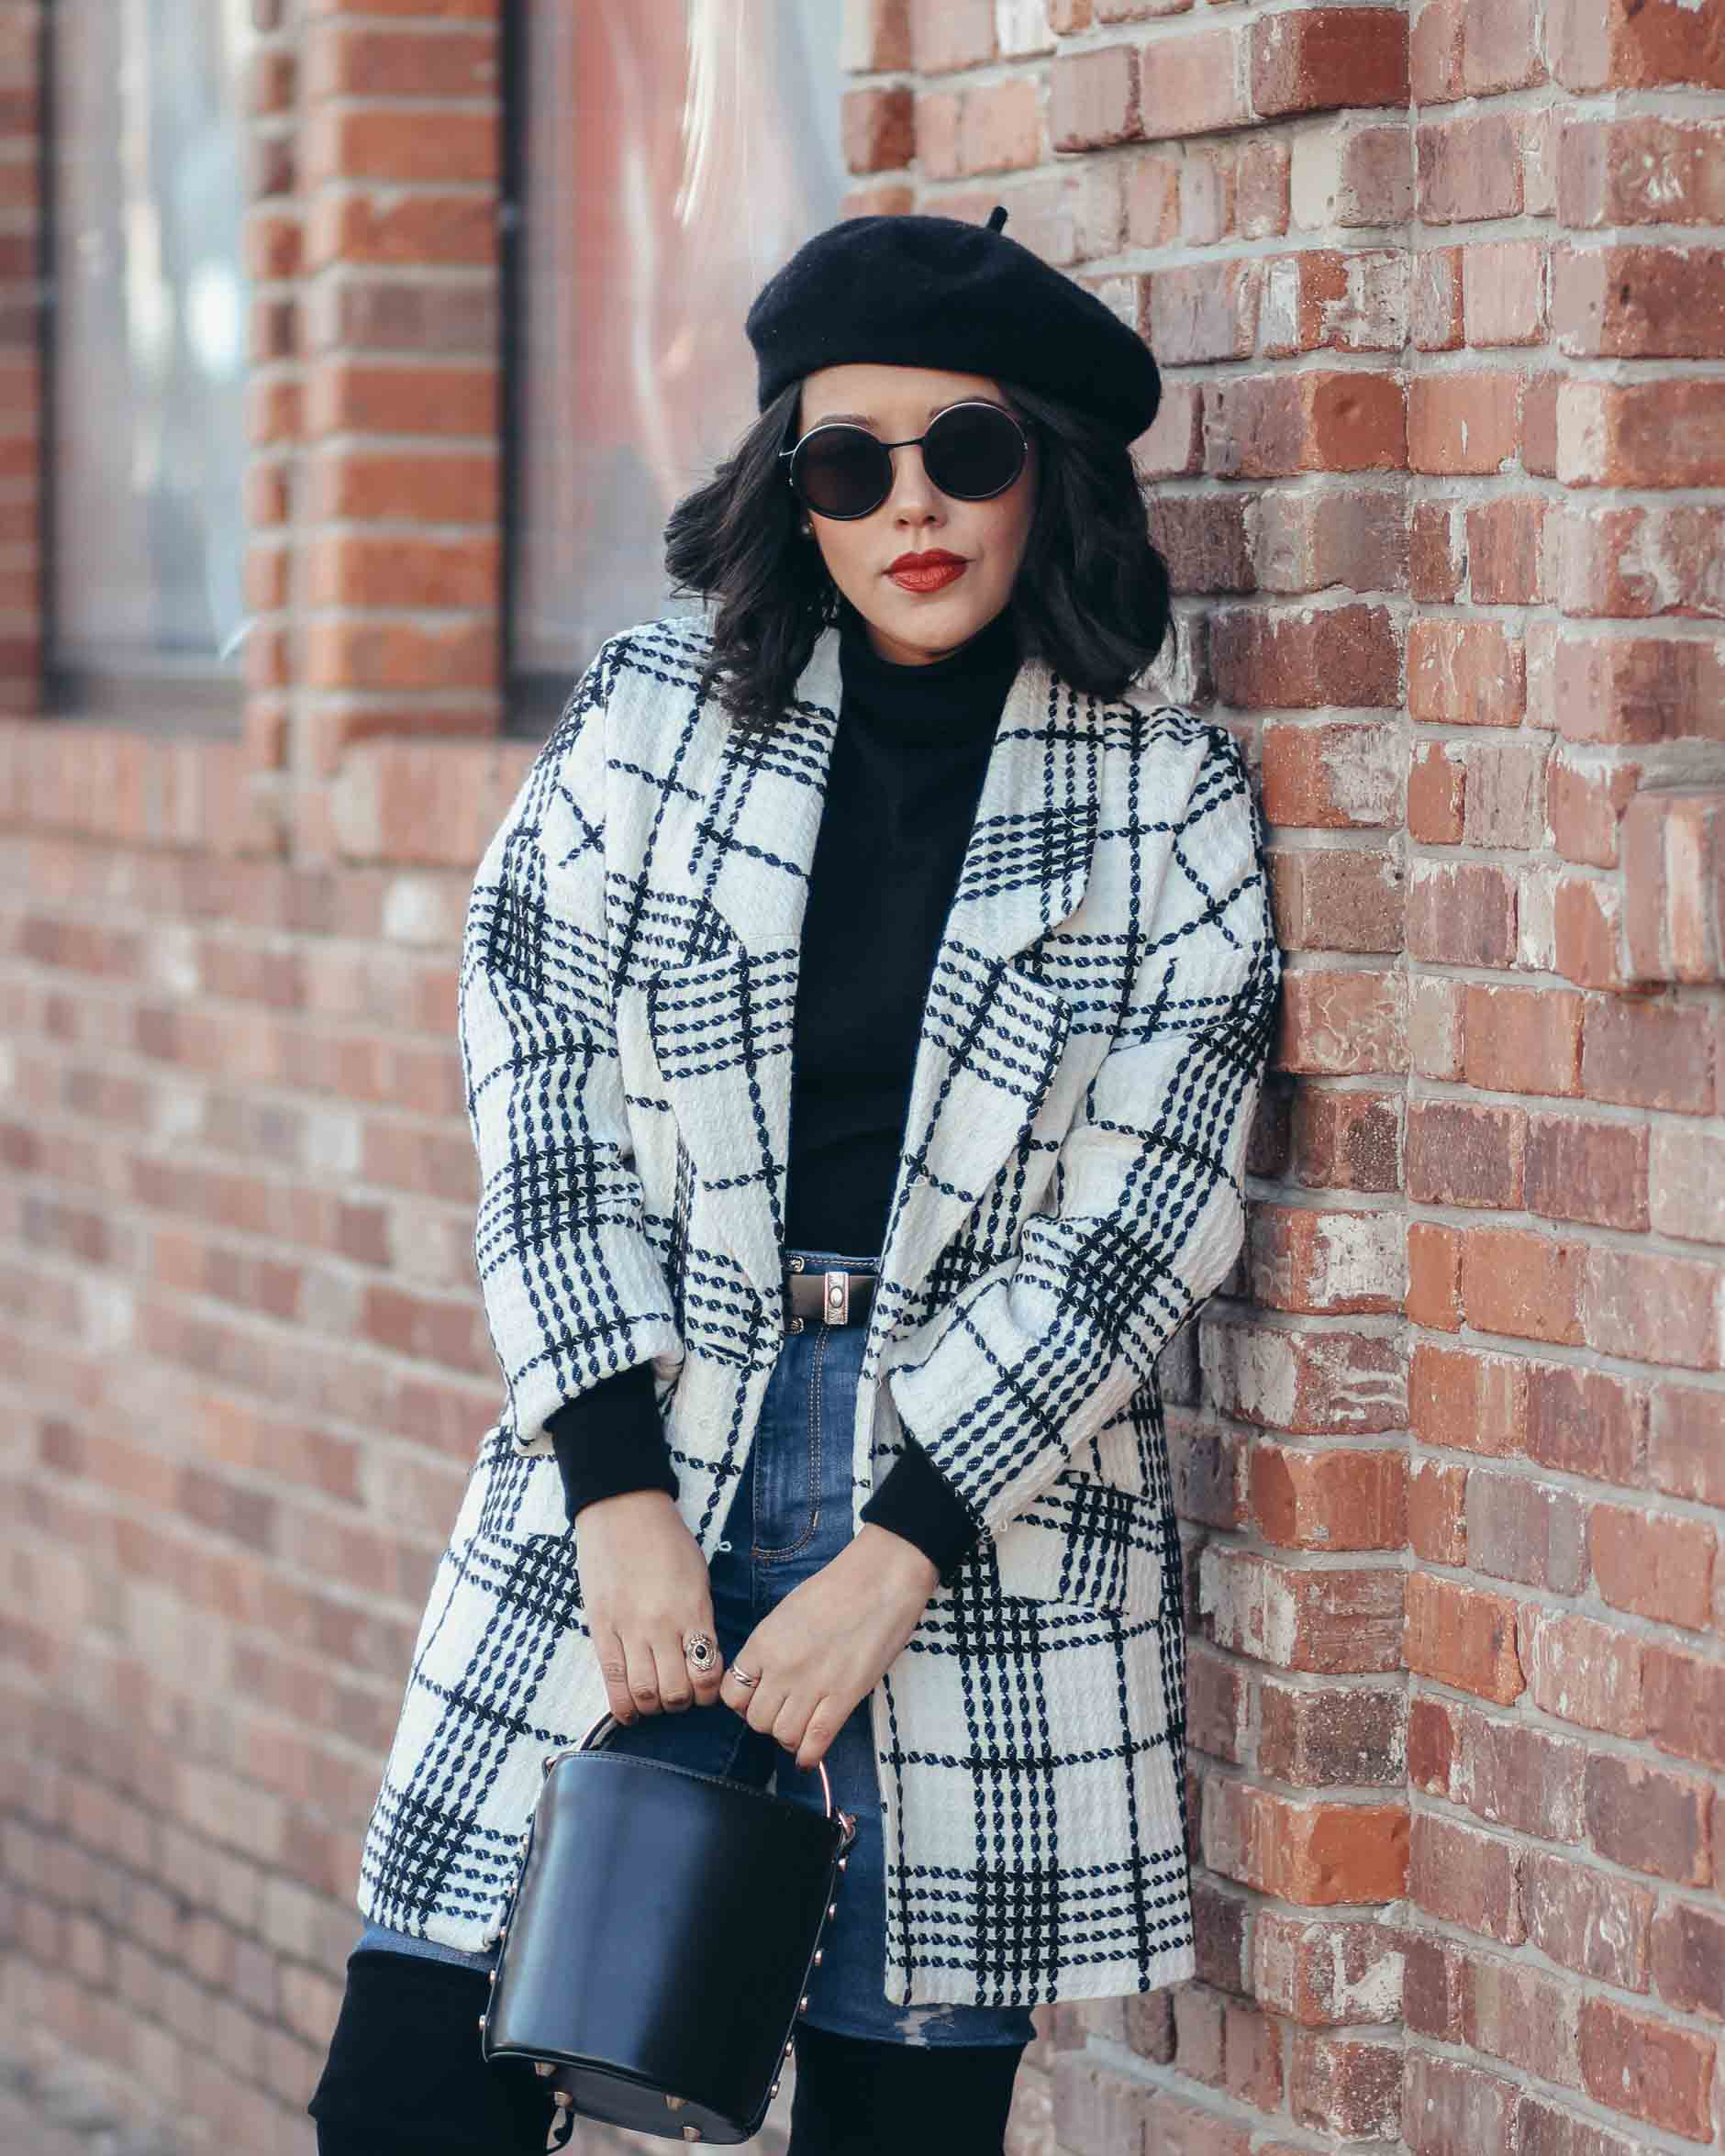 lifestyle blogger naty michele wearing a beret with a black and white coat